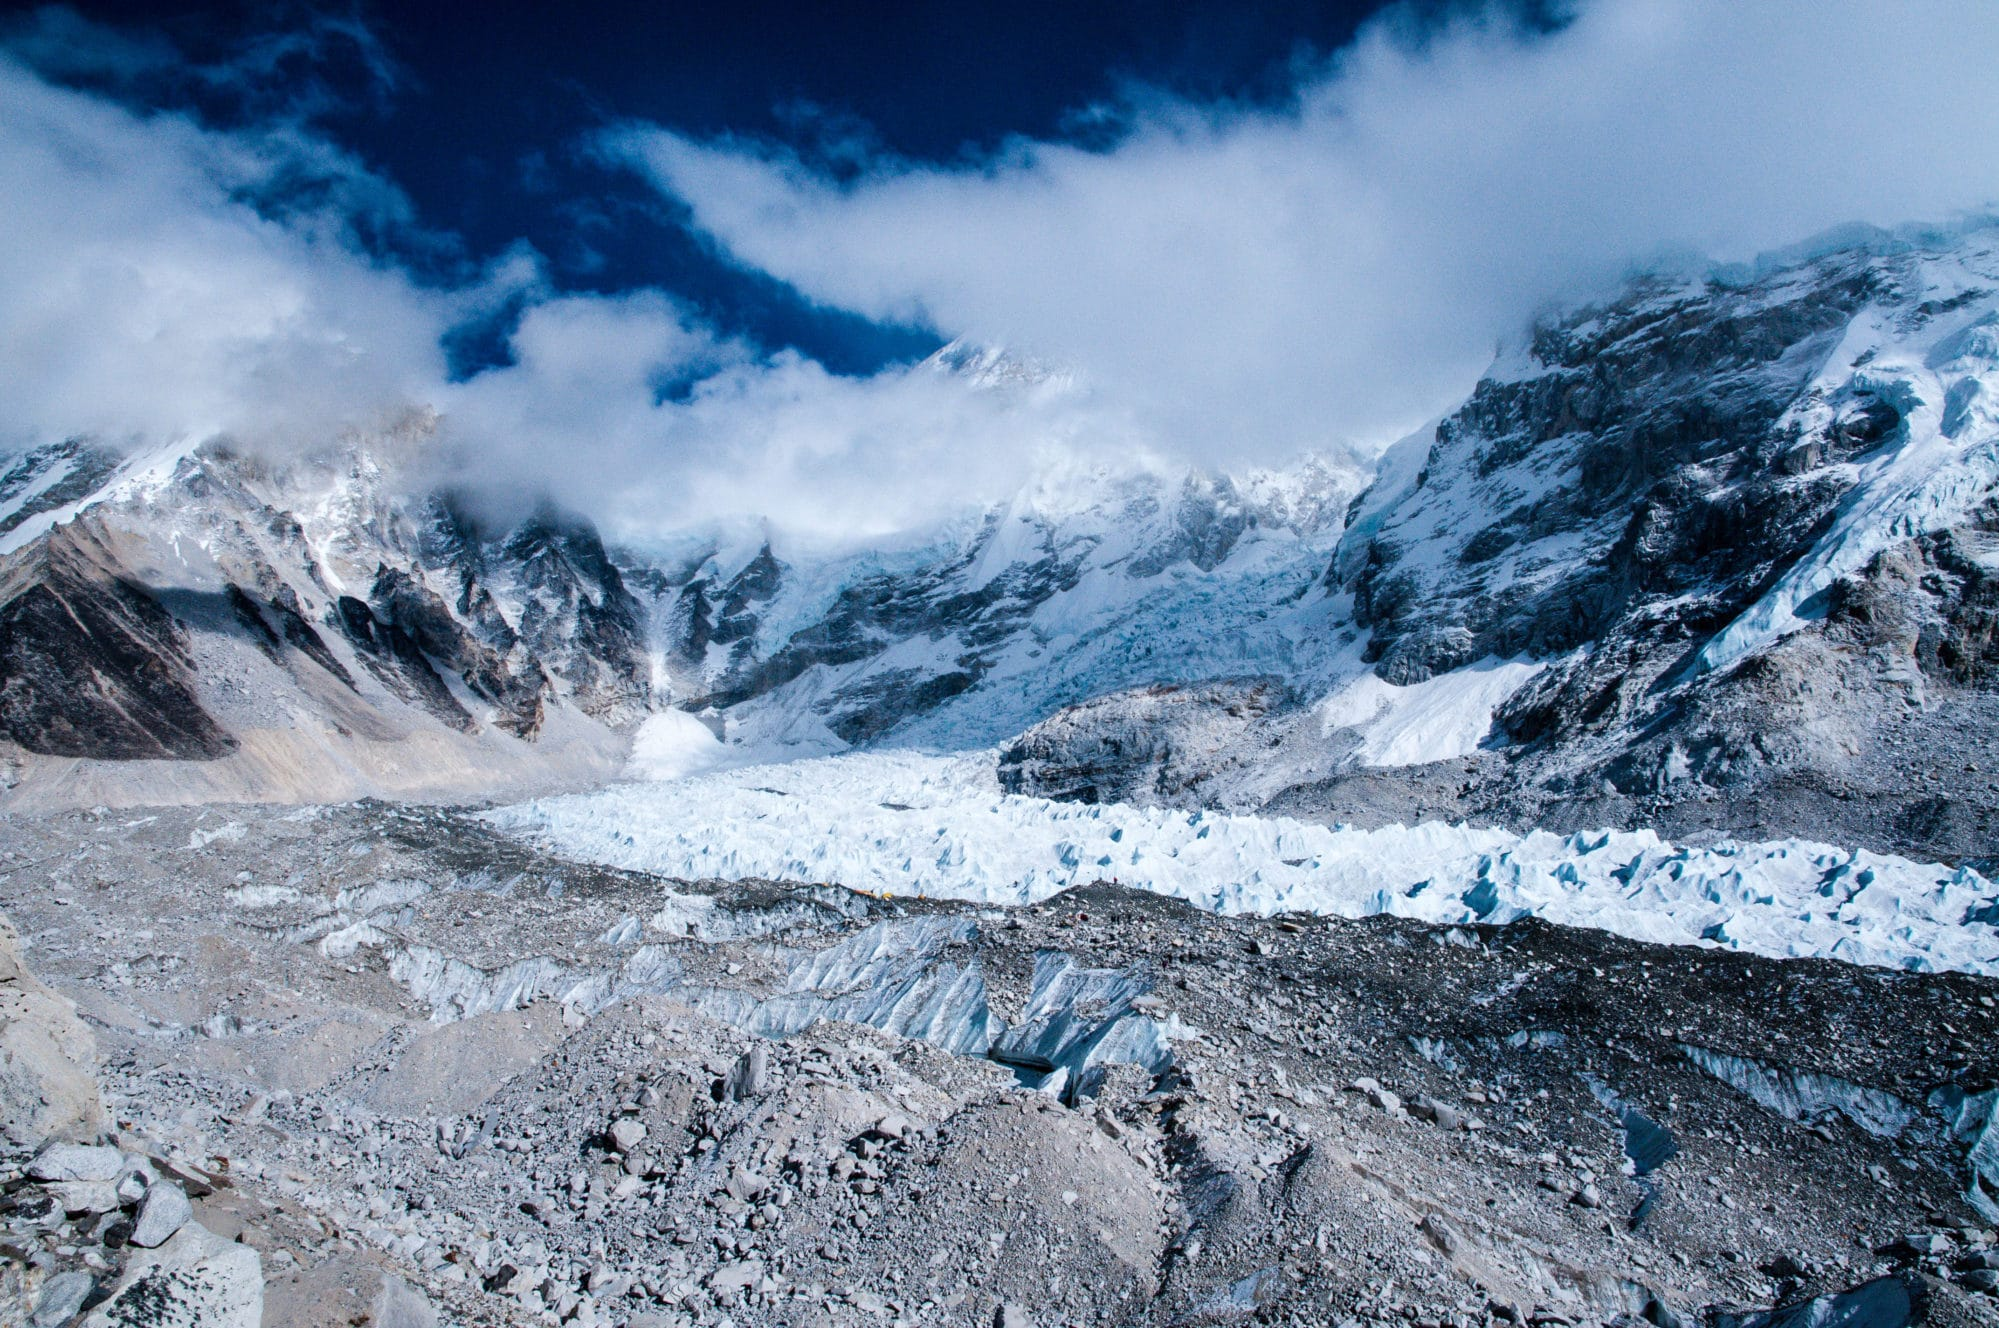 The Khumbu Icefall, Glacier, and Mount Everest Base Camp